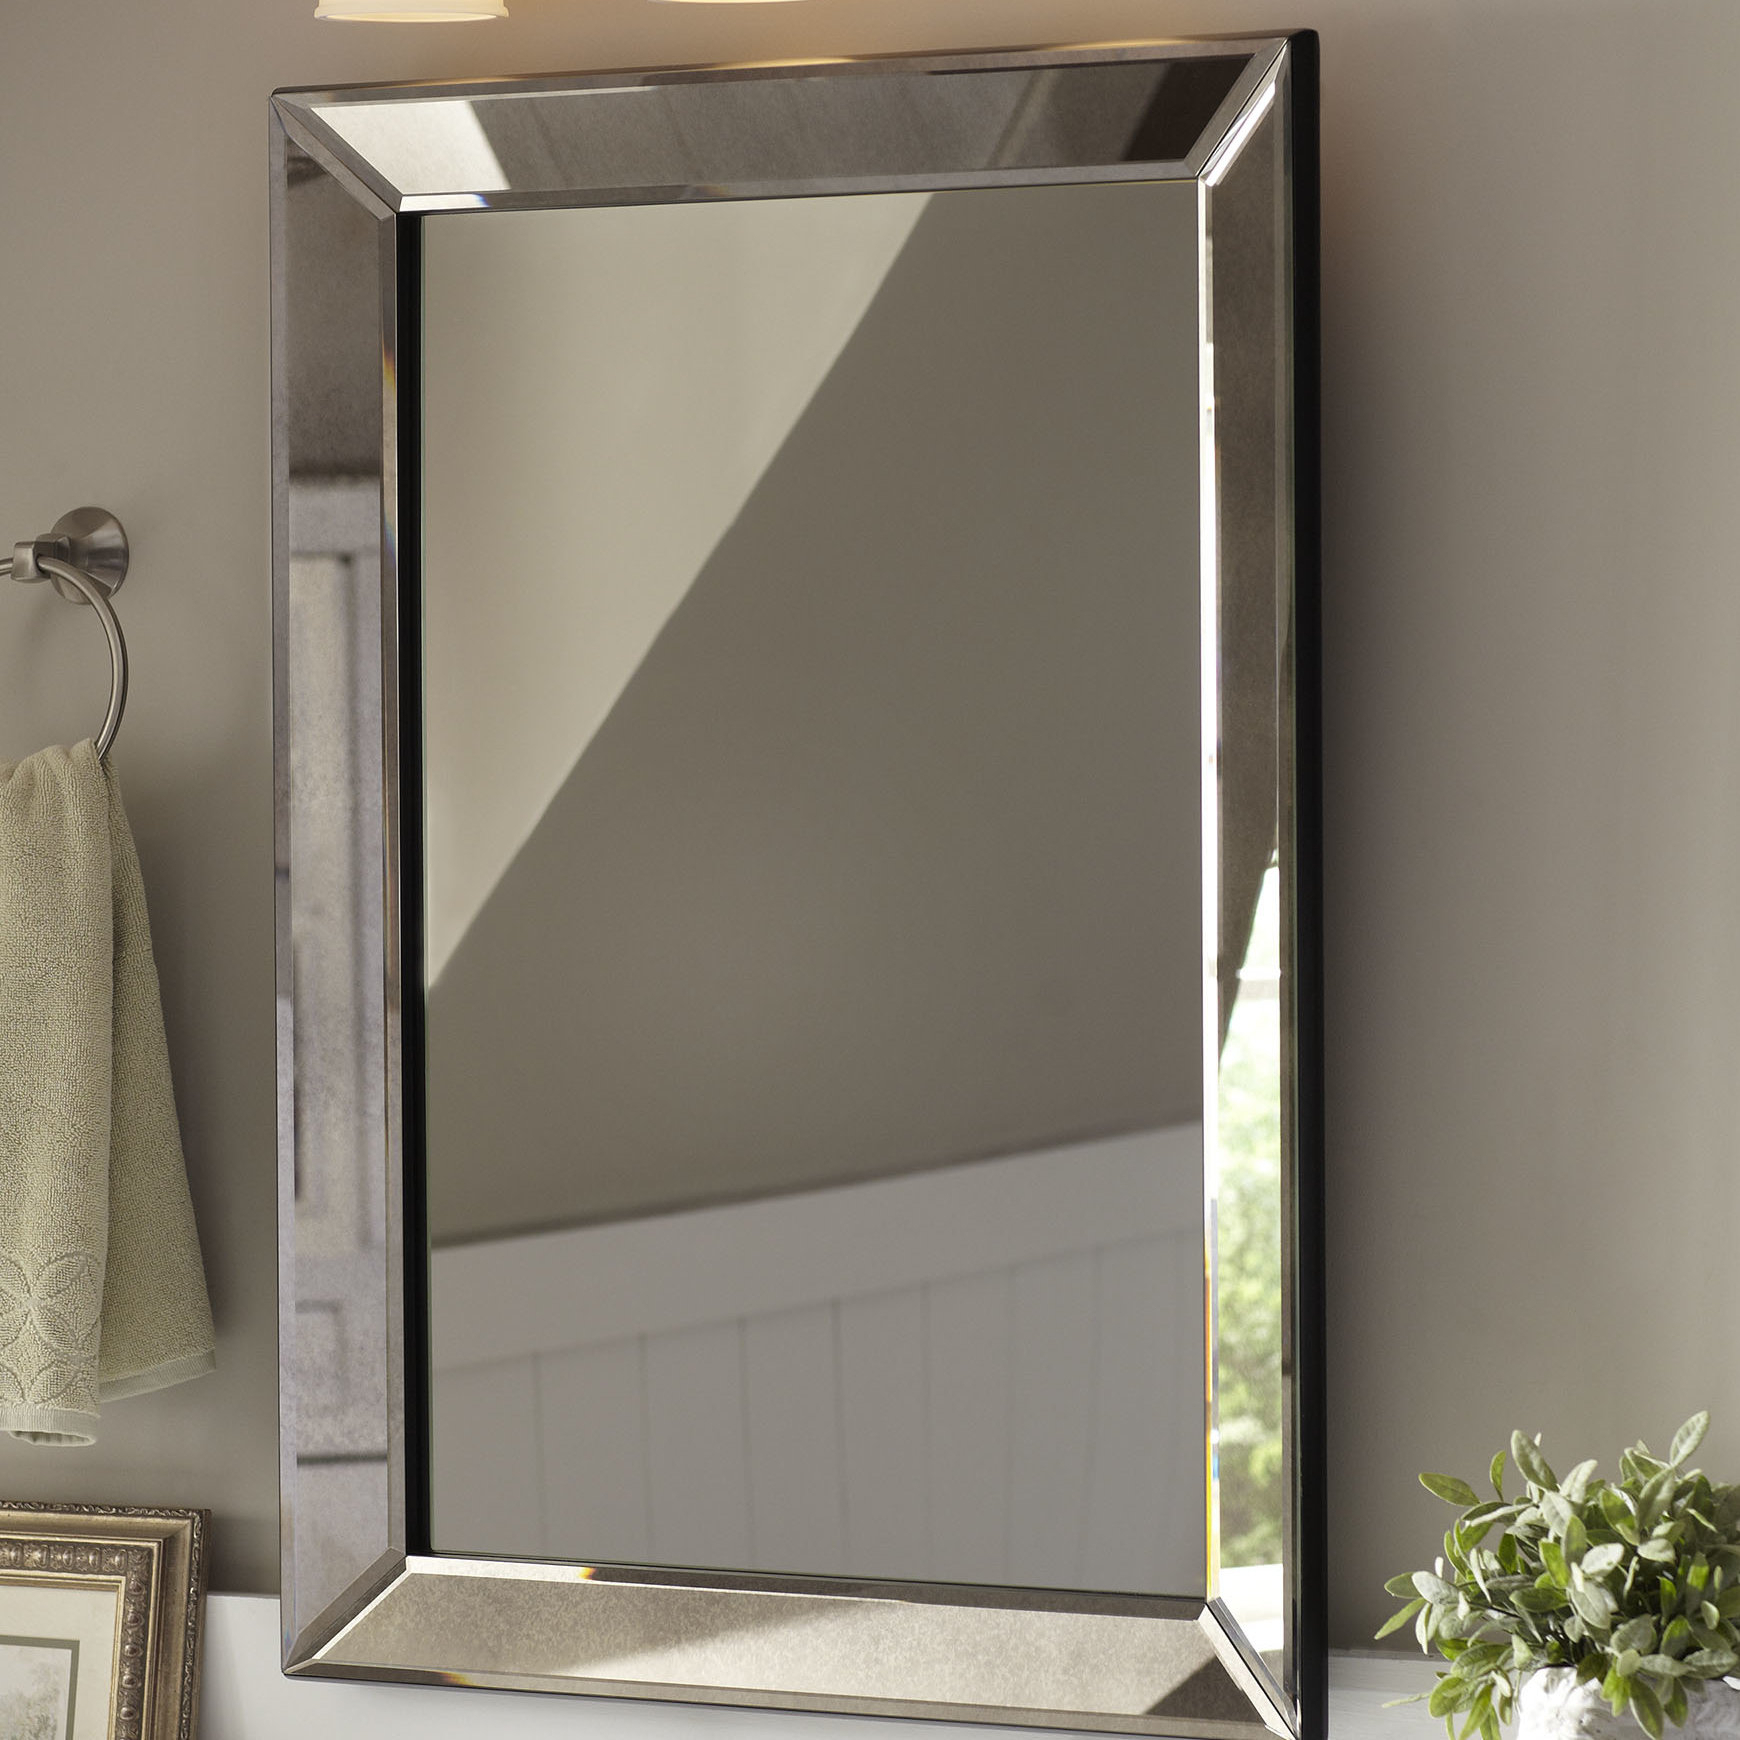 Farmhouse Mirrors | Birch Lane In Beaded Accent Wall Mirrors (View 20 of 20)